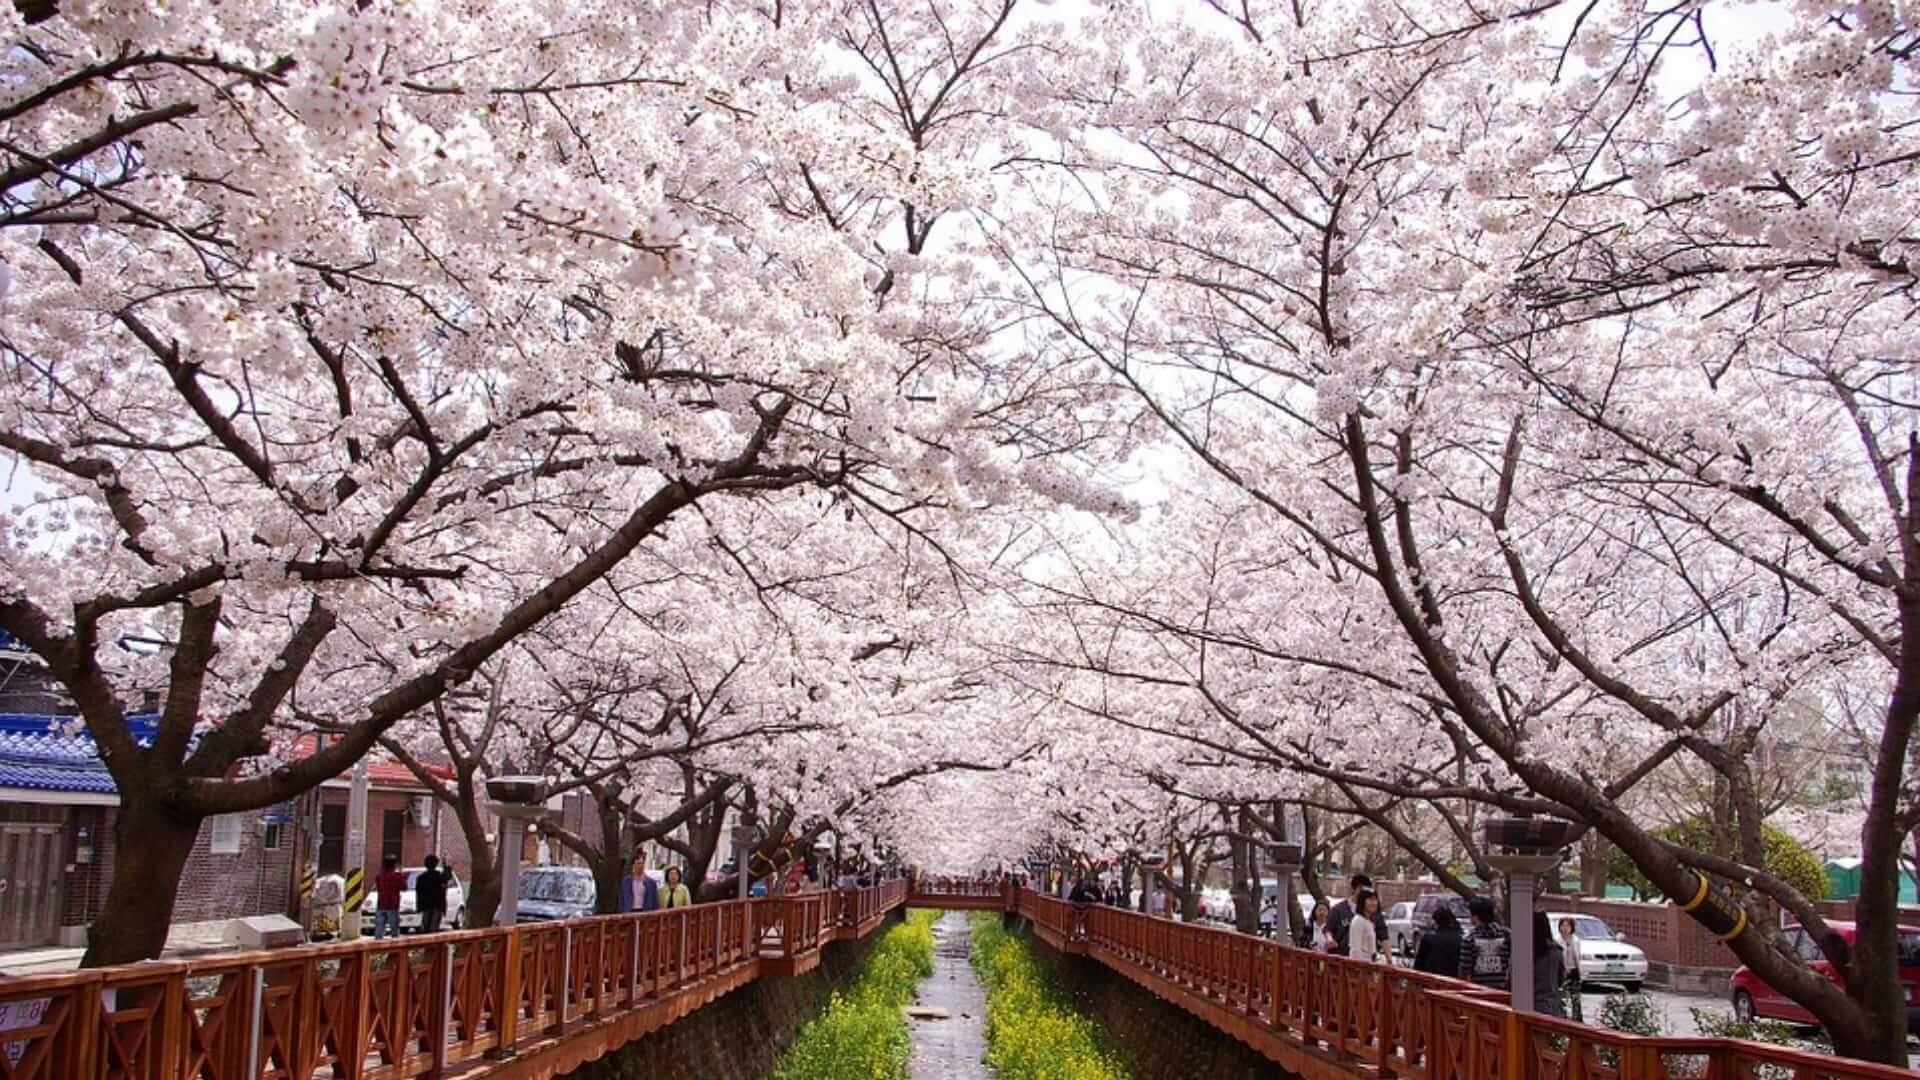 Blossom trees are standing next to an almost empty canal where people are walking on the side in Korea.